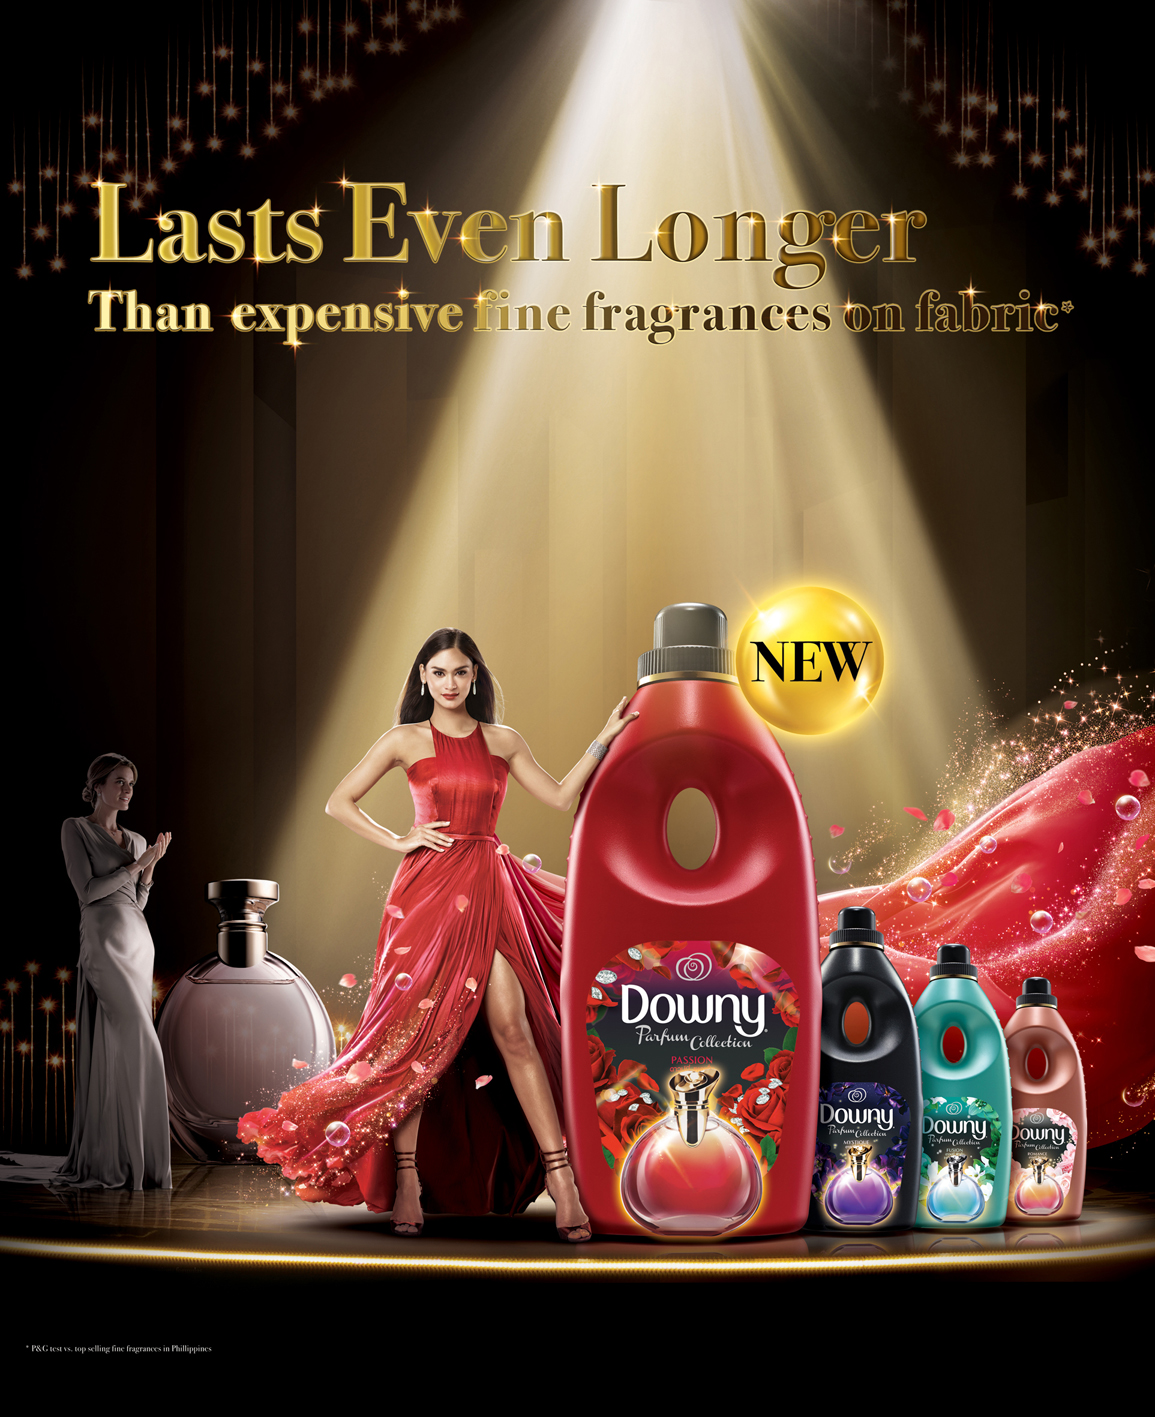 Downy Chanel Restage MGZ